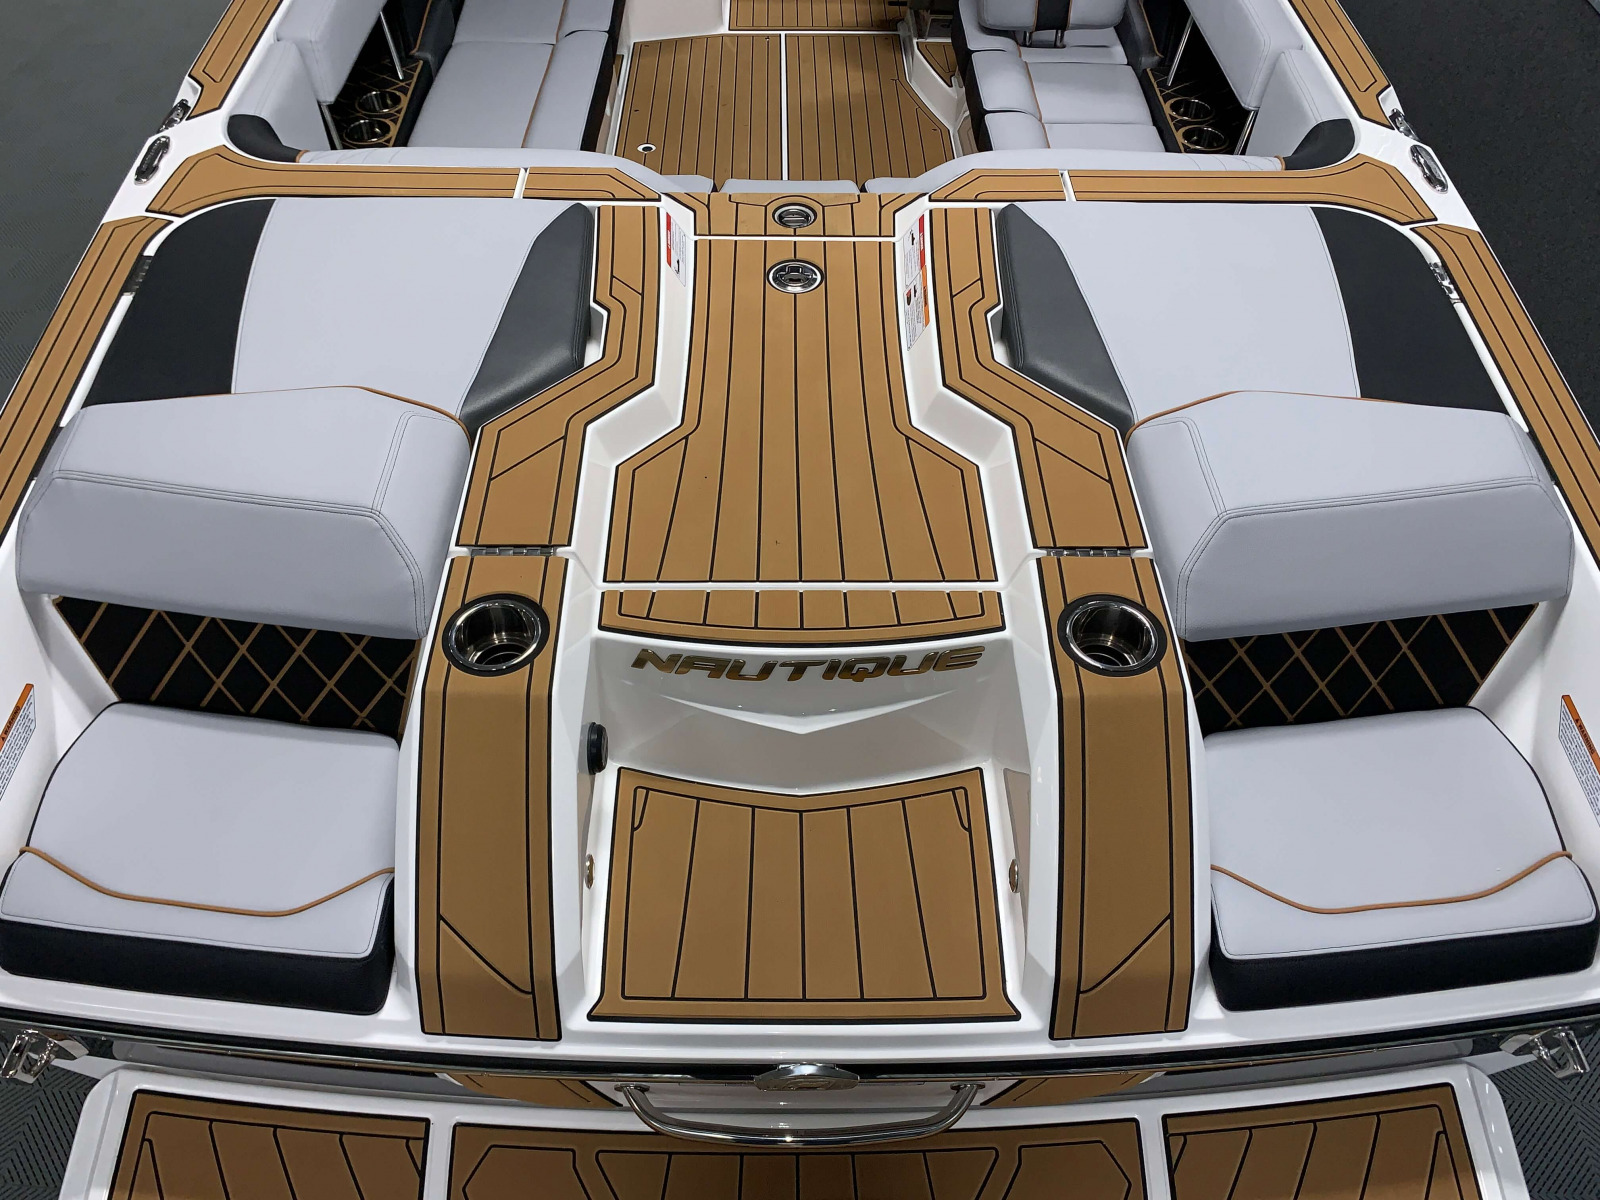 Transom of the 2021 Nautique GS22 Wake Boat